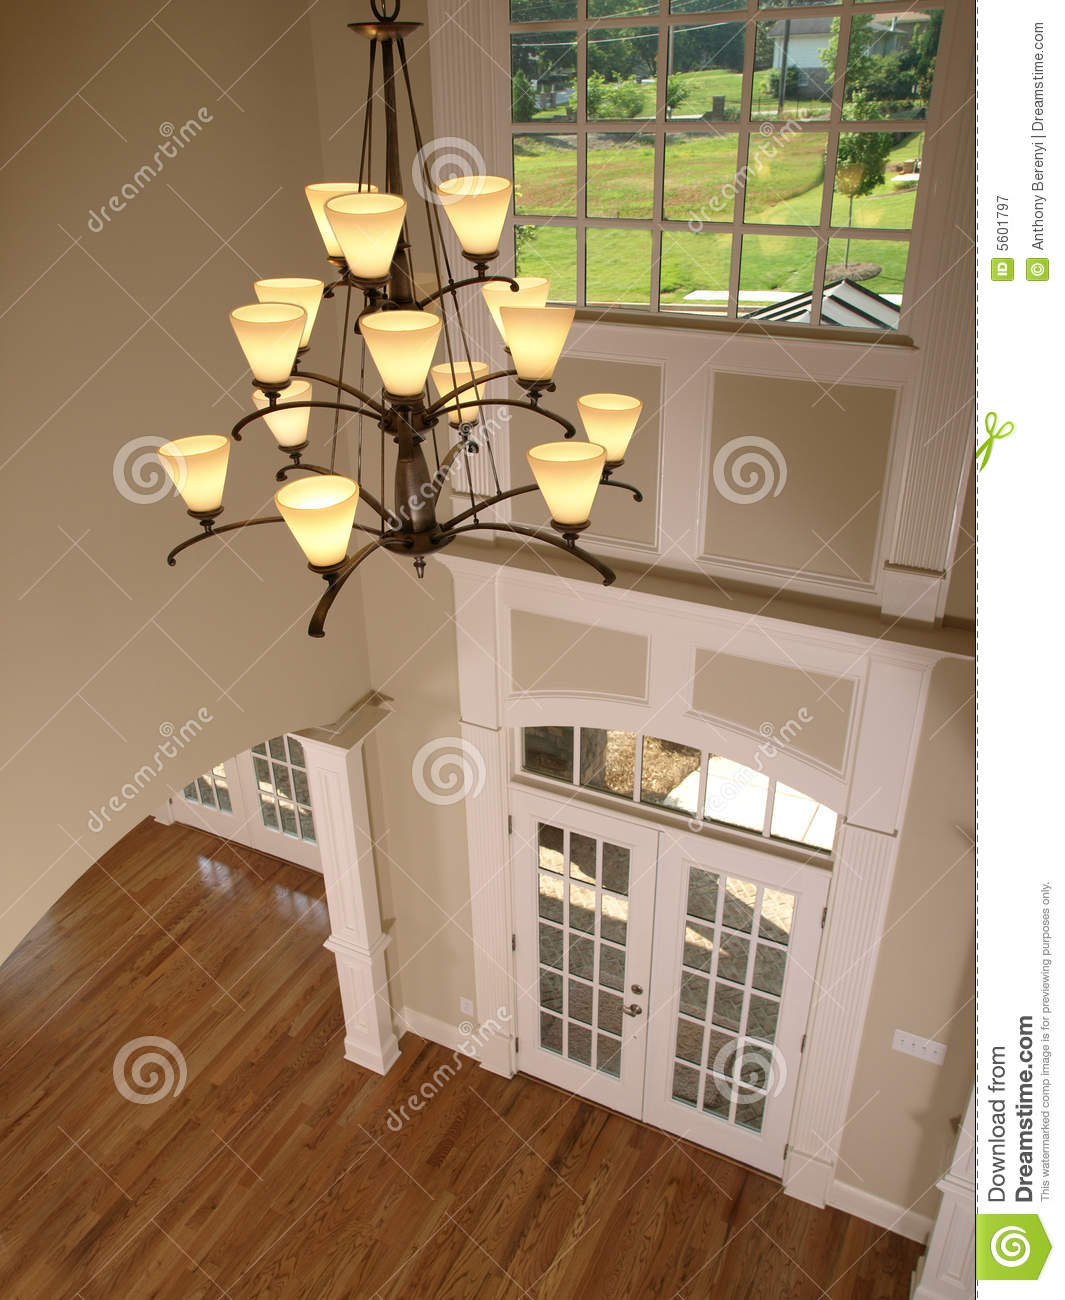 Foyer Architecture Website : Luxury entrance foyer with hanging light stock image